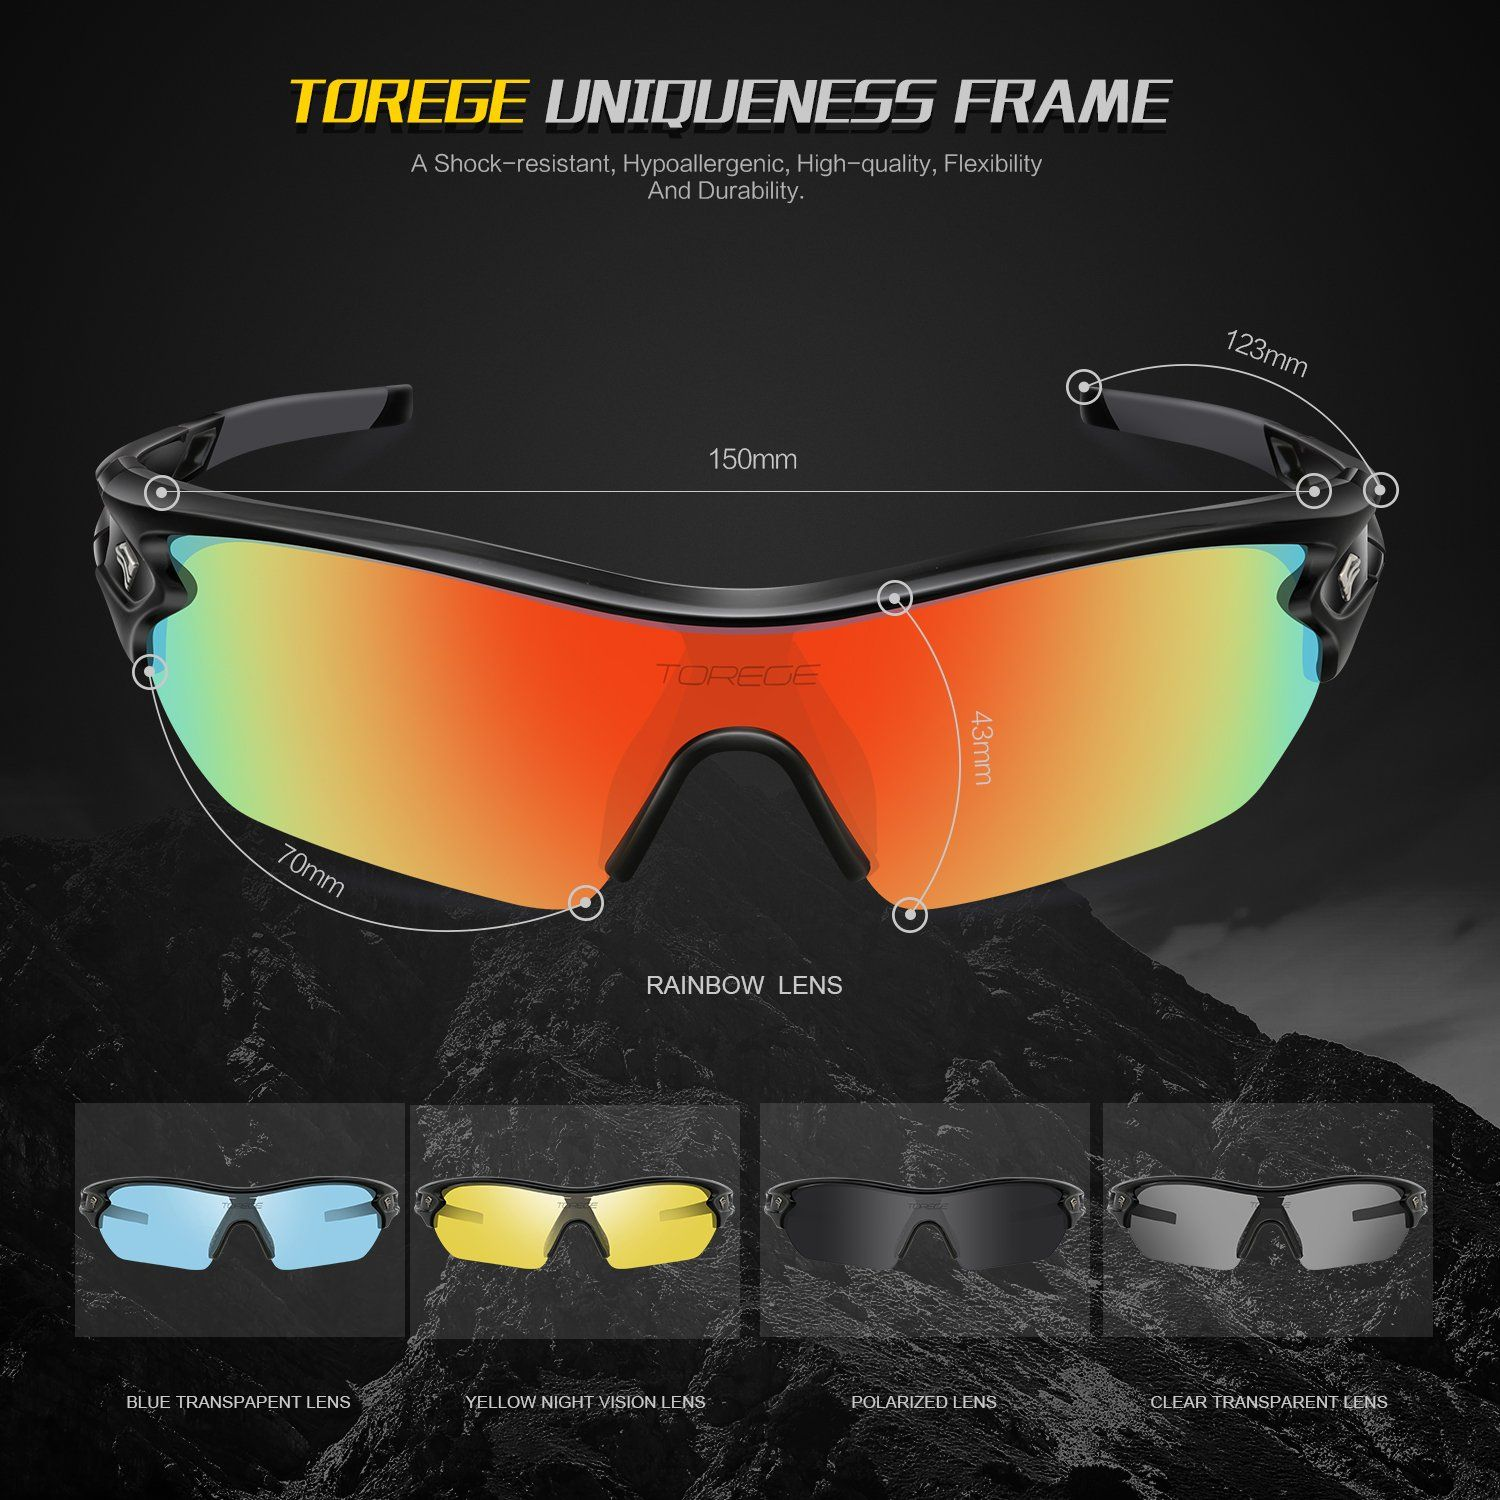 9f708422e11 TOREGE Polarized Sports Sunglasses With 5 Interchangeable Lenes for Men  Women Cycling Running Driving Fishing Golf